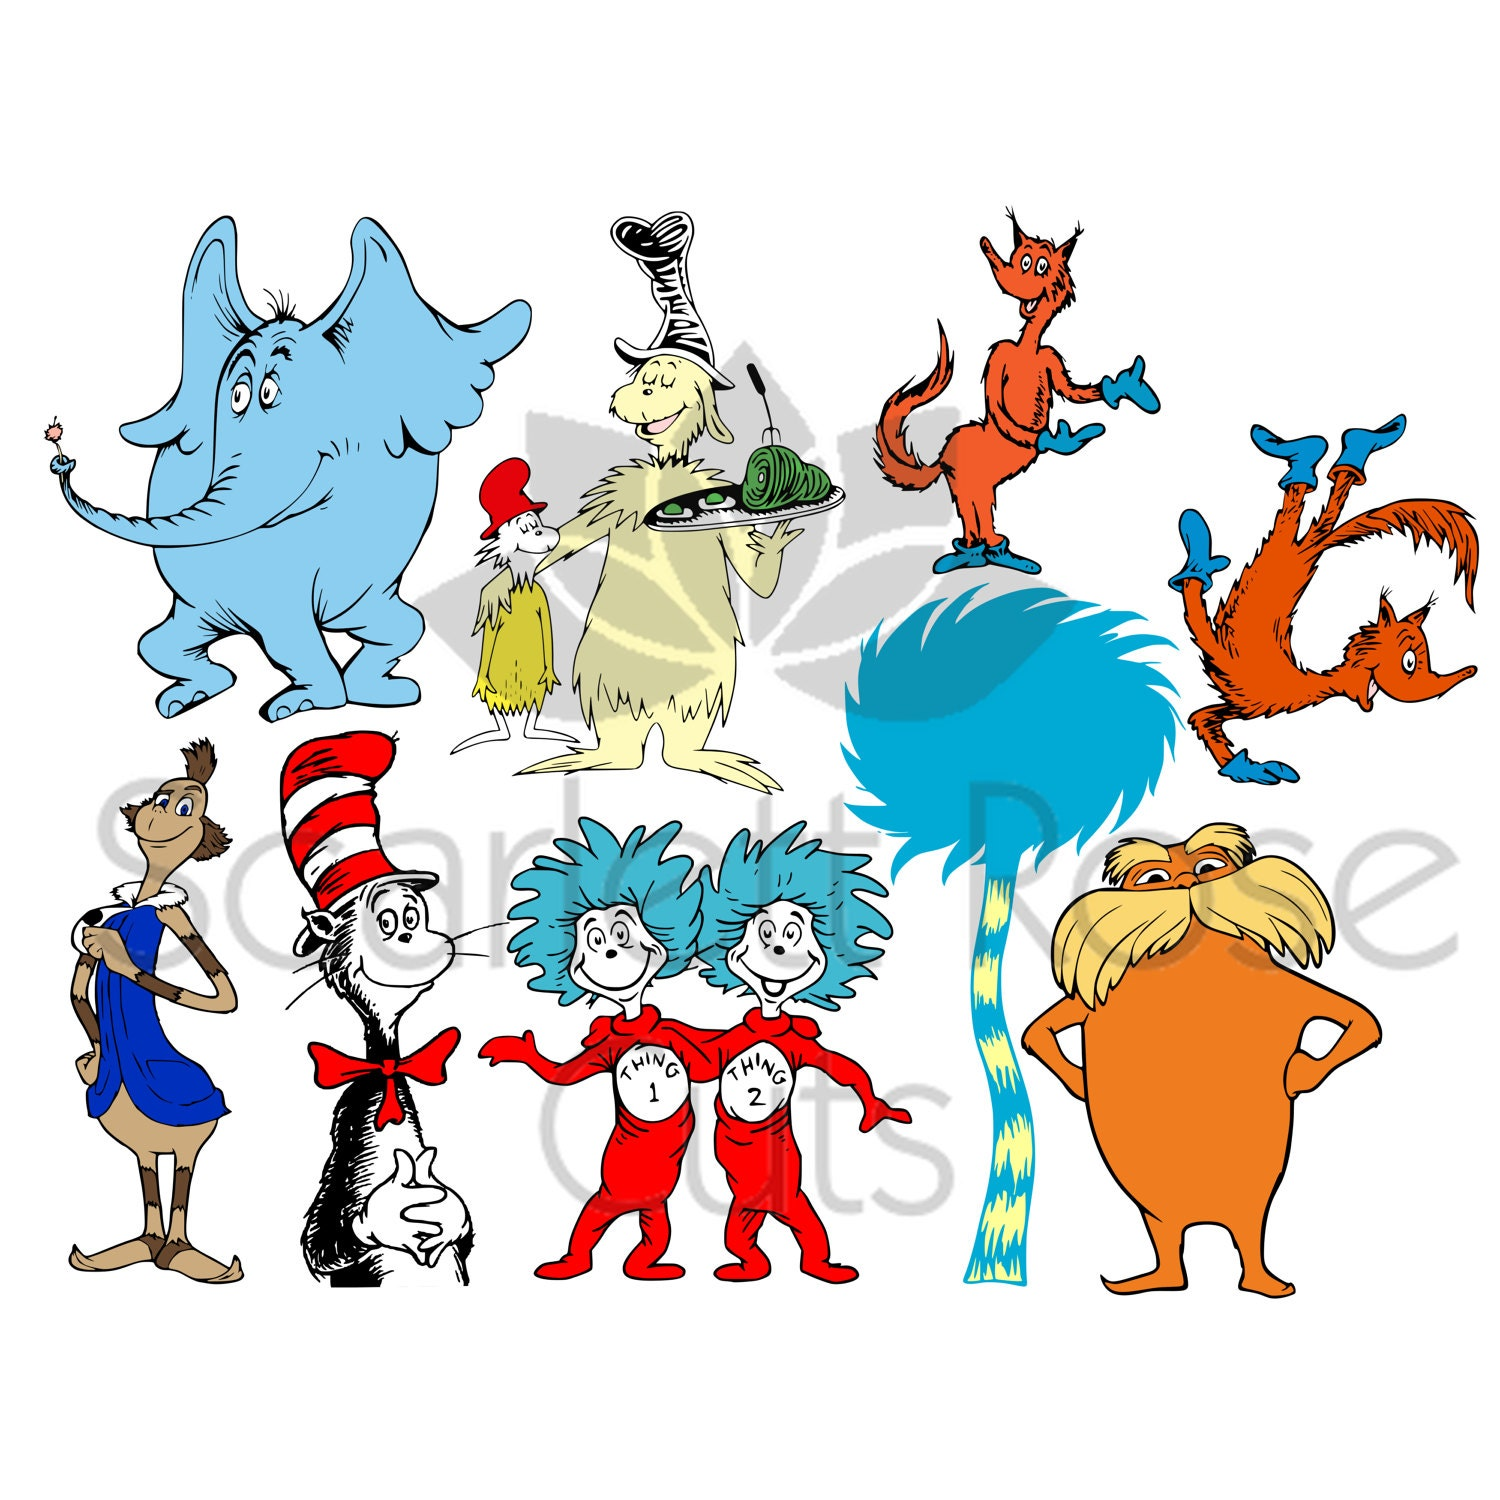 Cat In The Hat Characters: The Cat In The Hat Svg Dr.Seuss Characters Set By